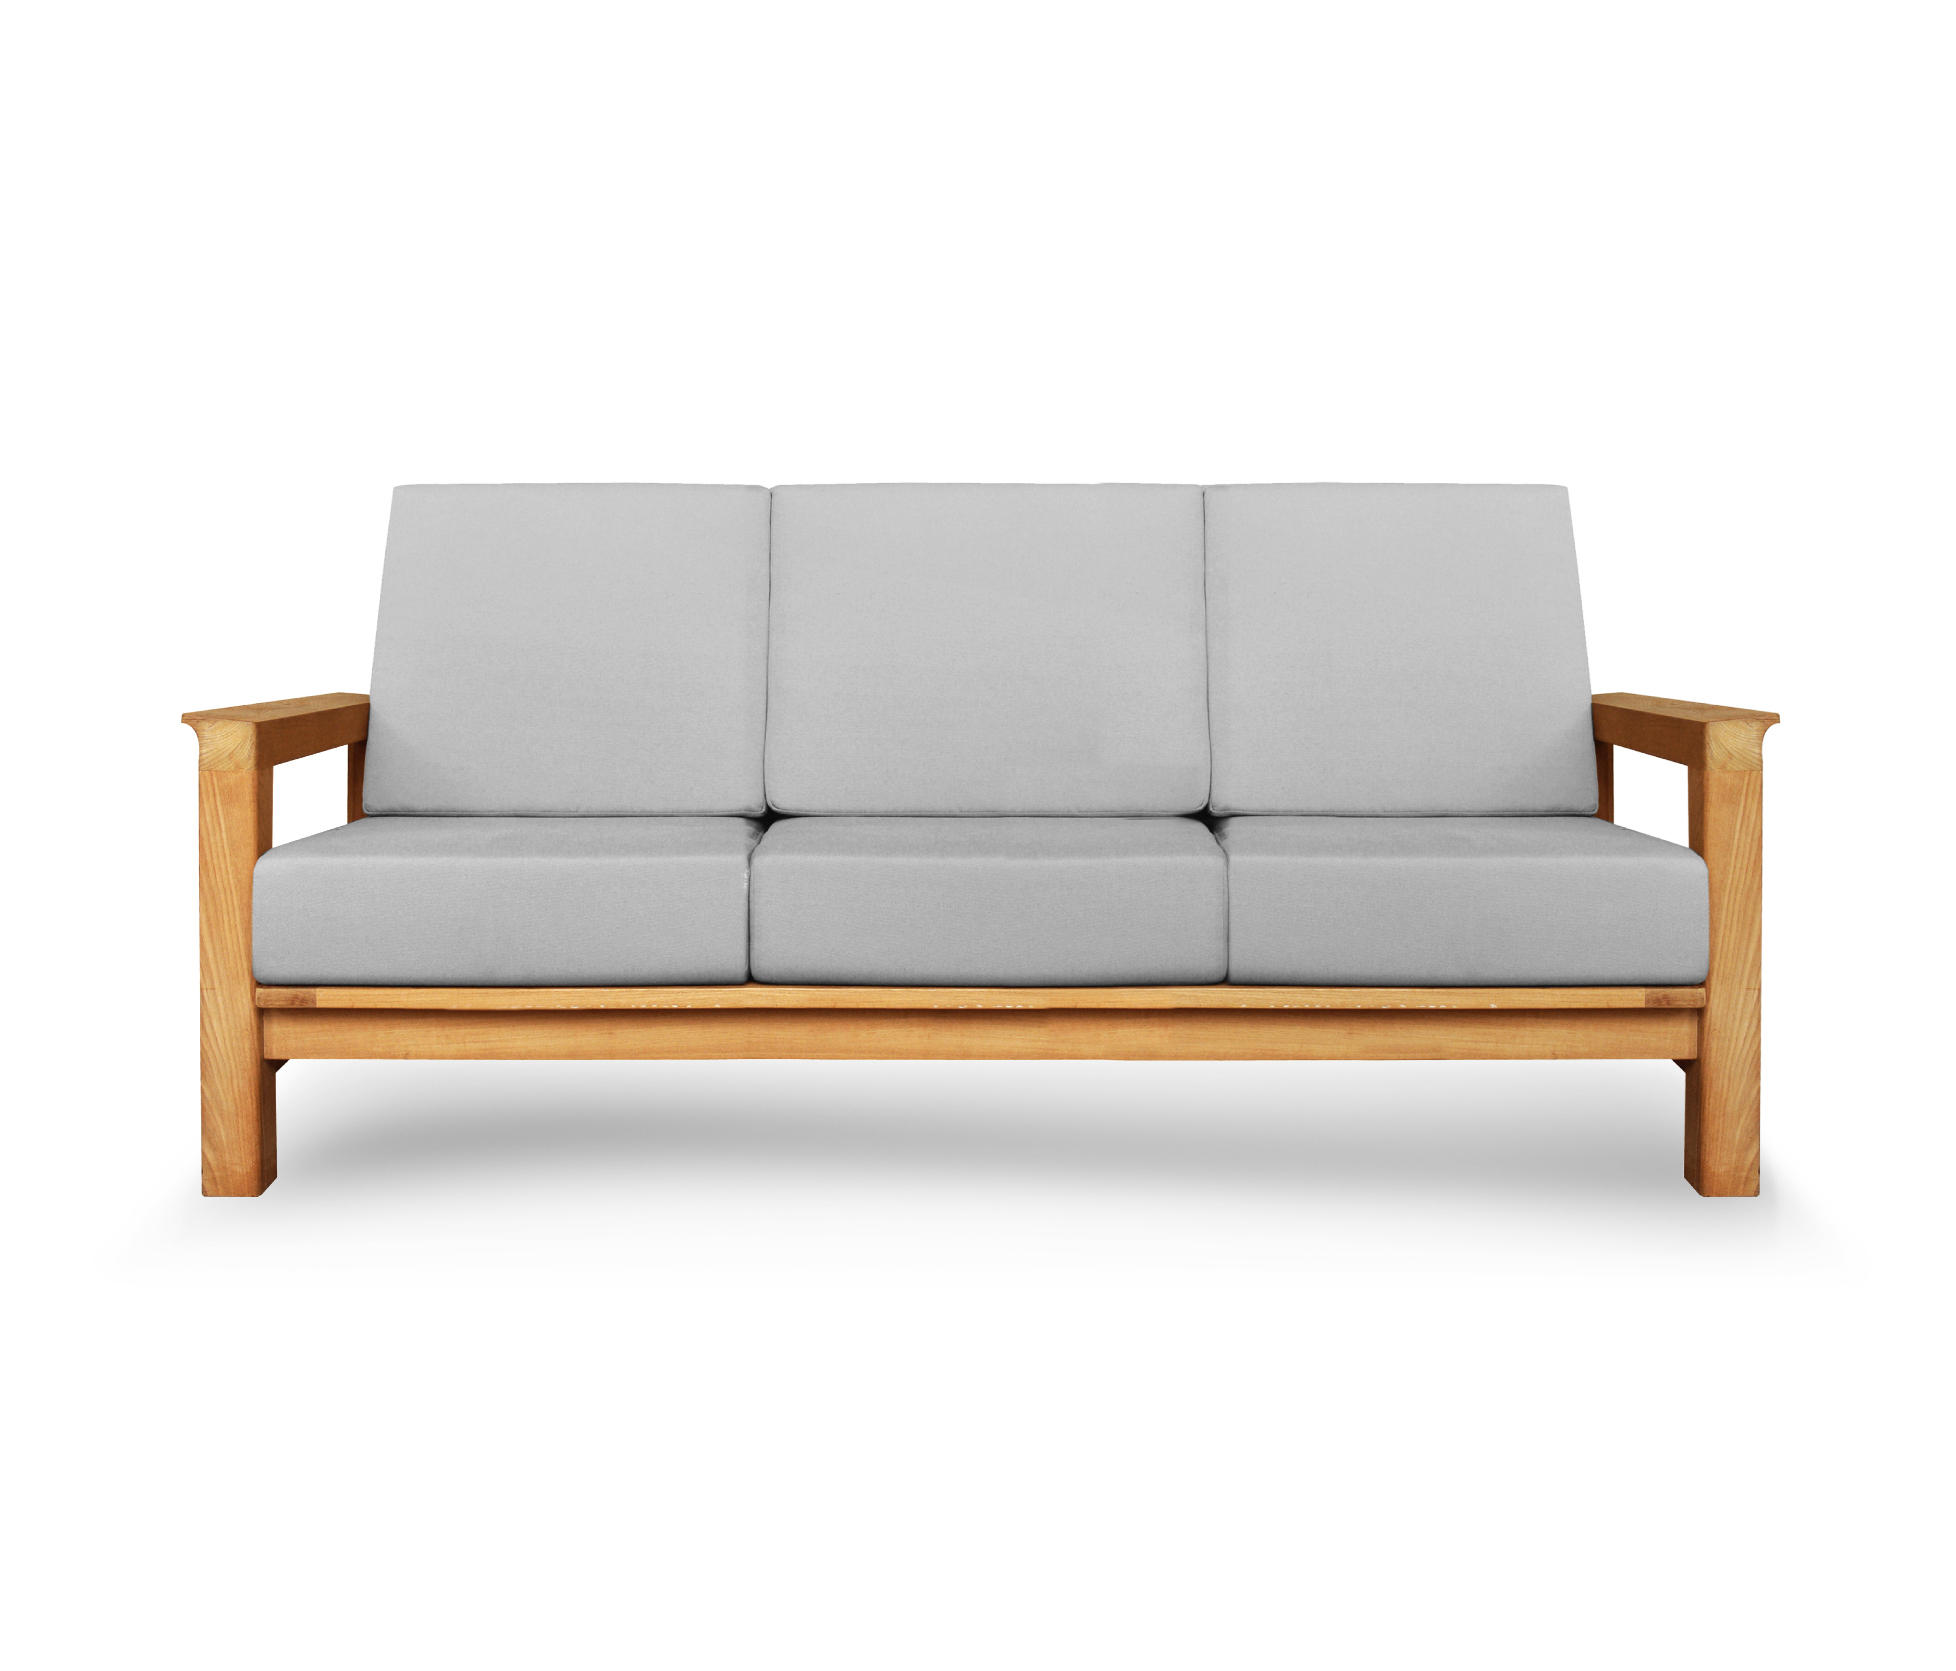 Sofa Frankfurt Frankfurt 3 Seater Sofas From Deesawat Architonic